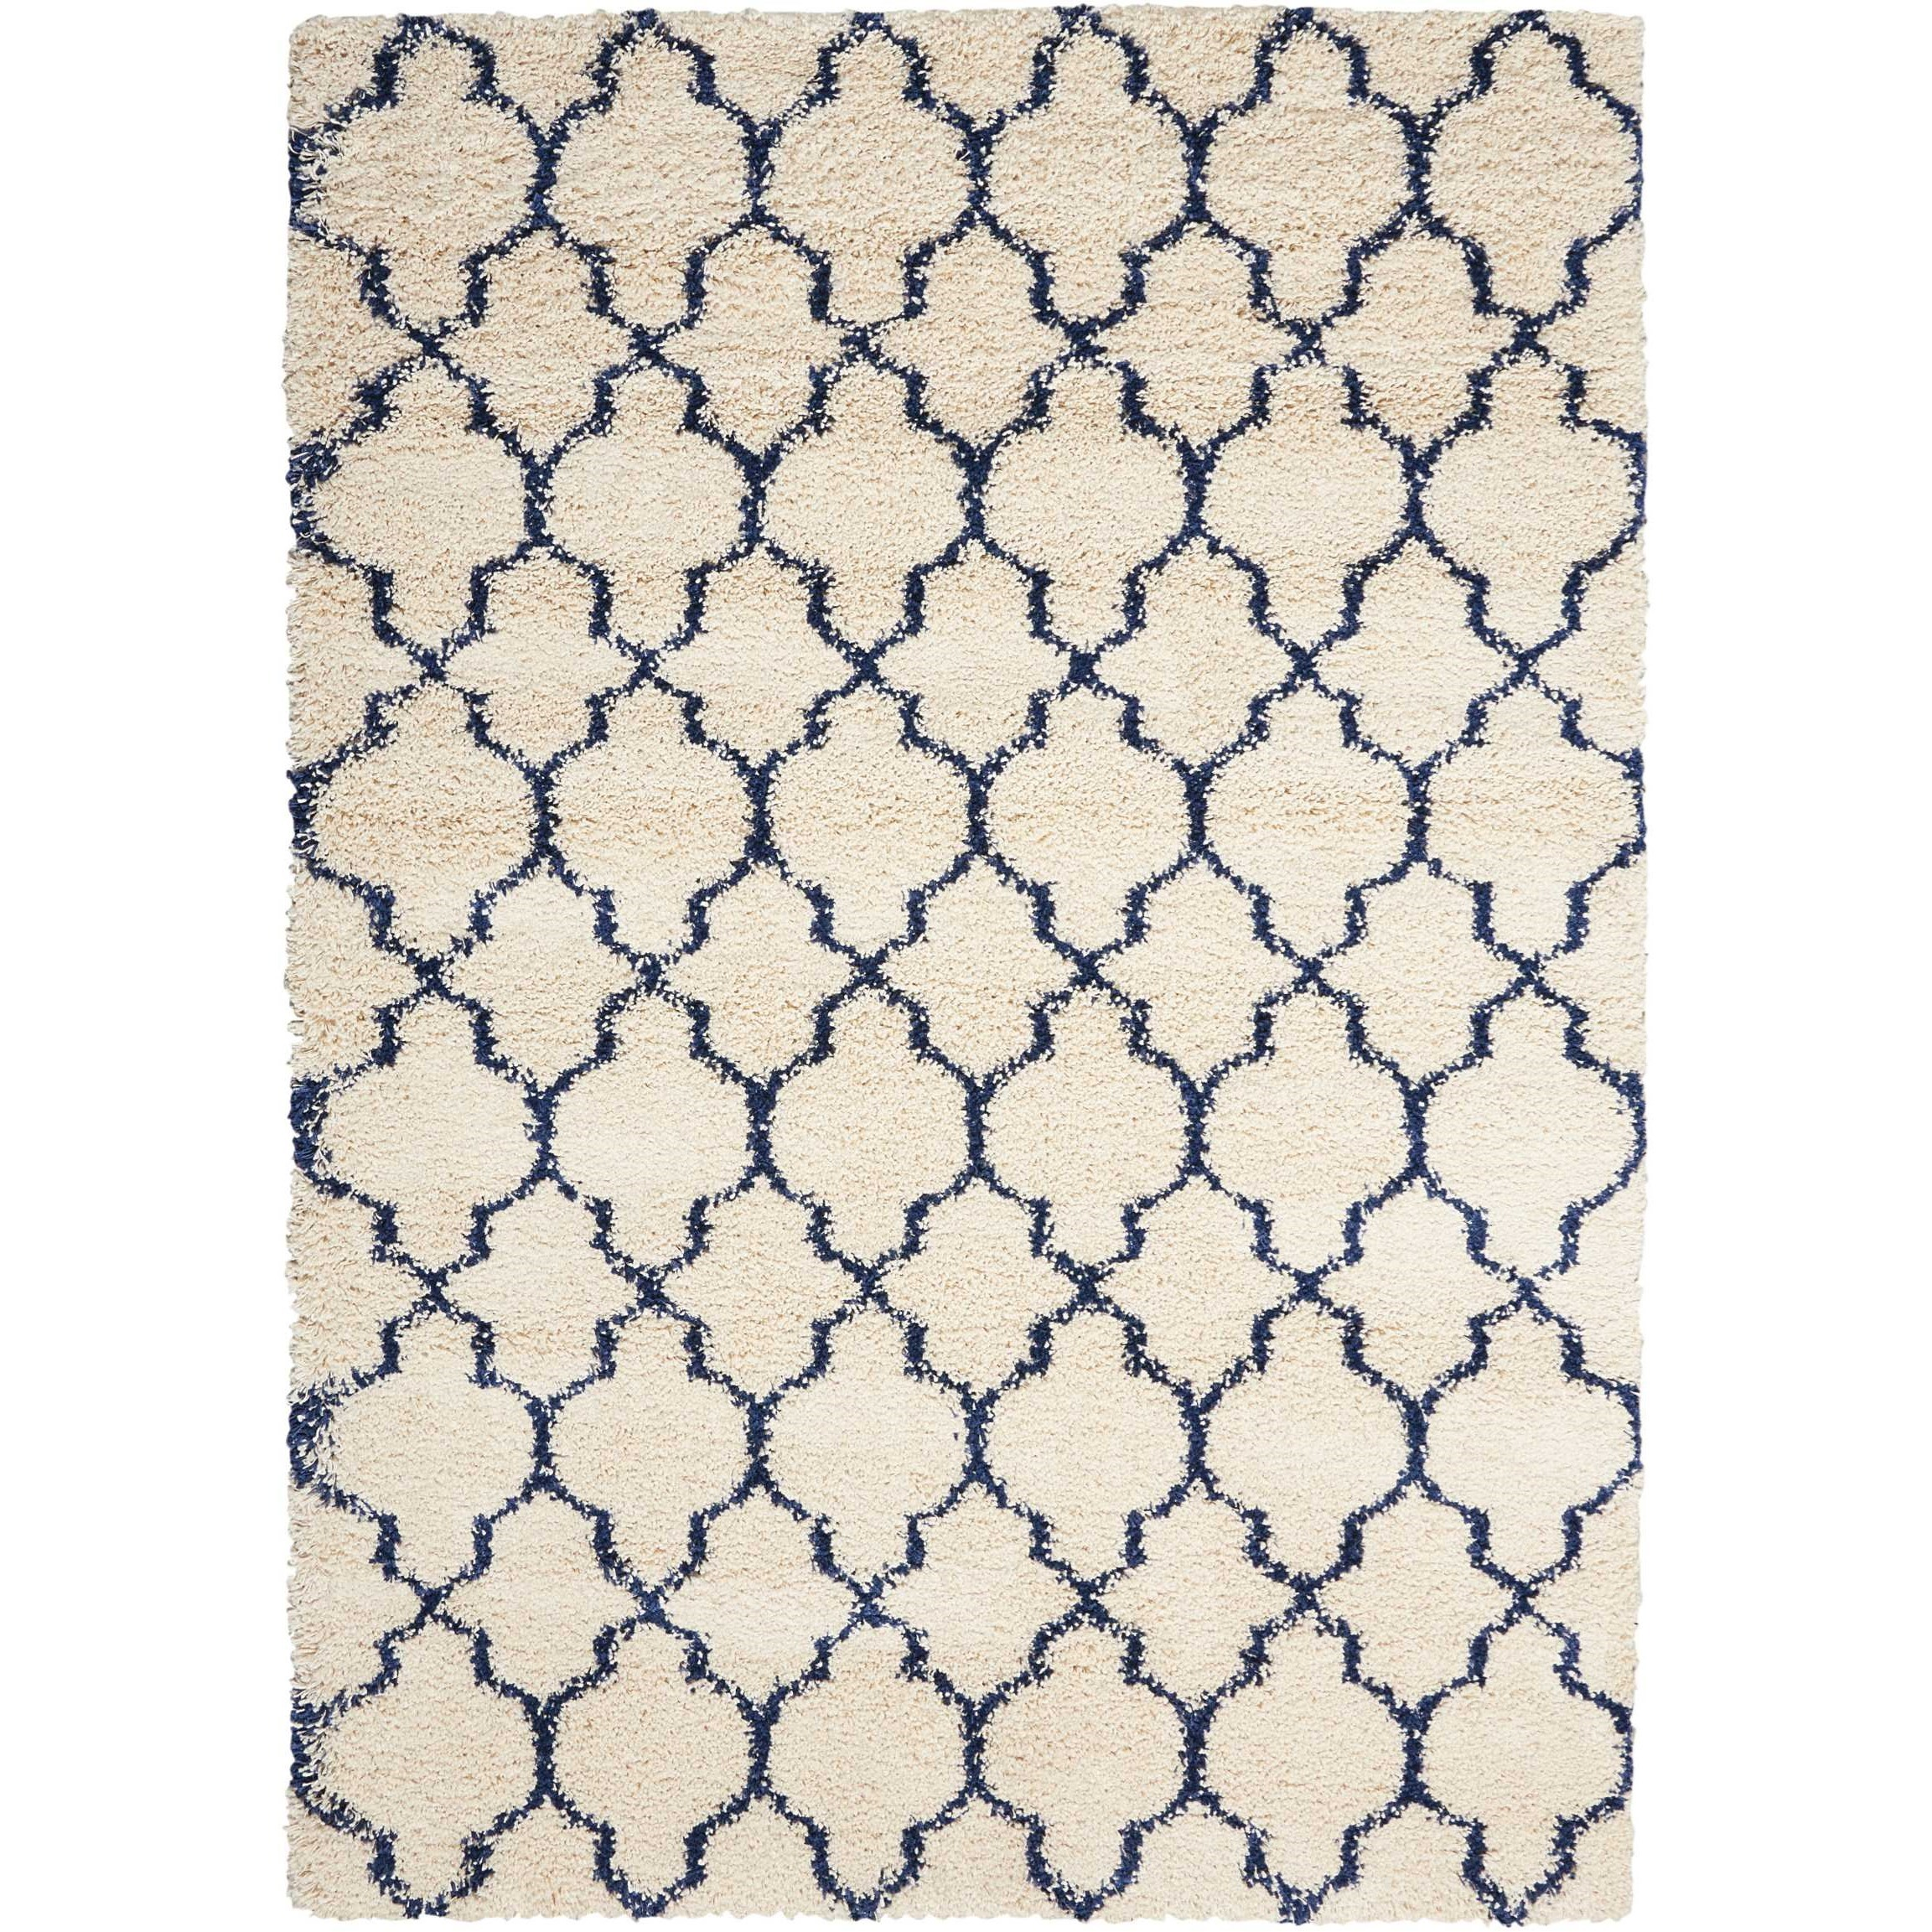 Amore 10' x 13' Ivory/Blue Rectangle Rug by Nourison at Home Collections Furniture